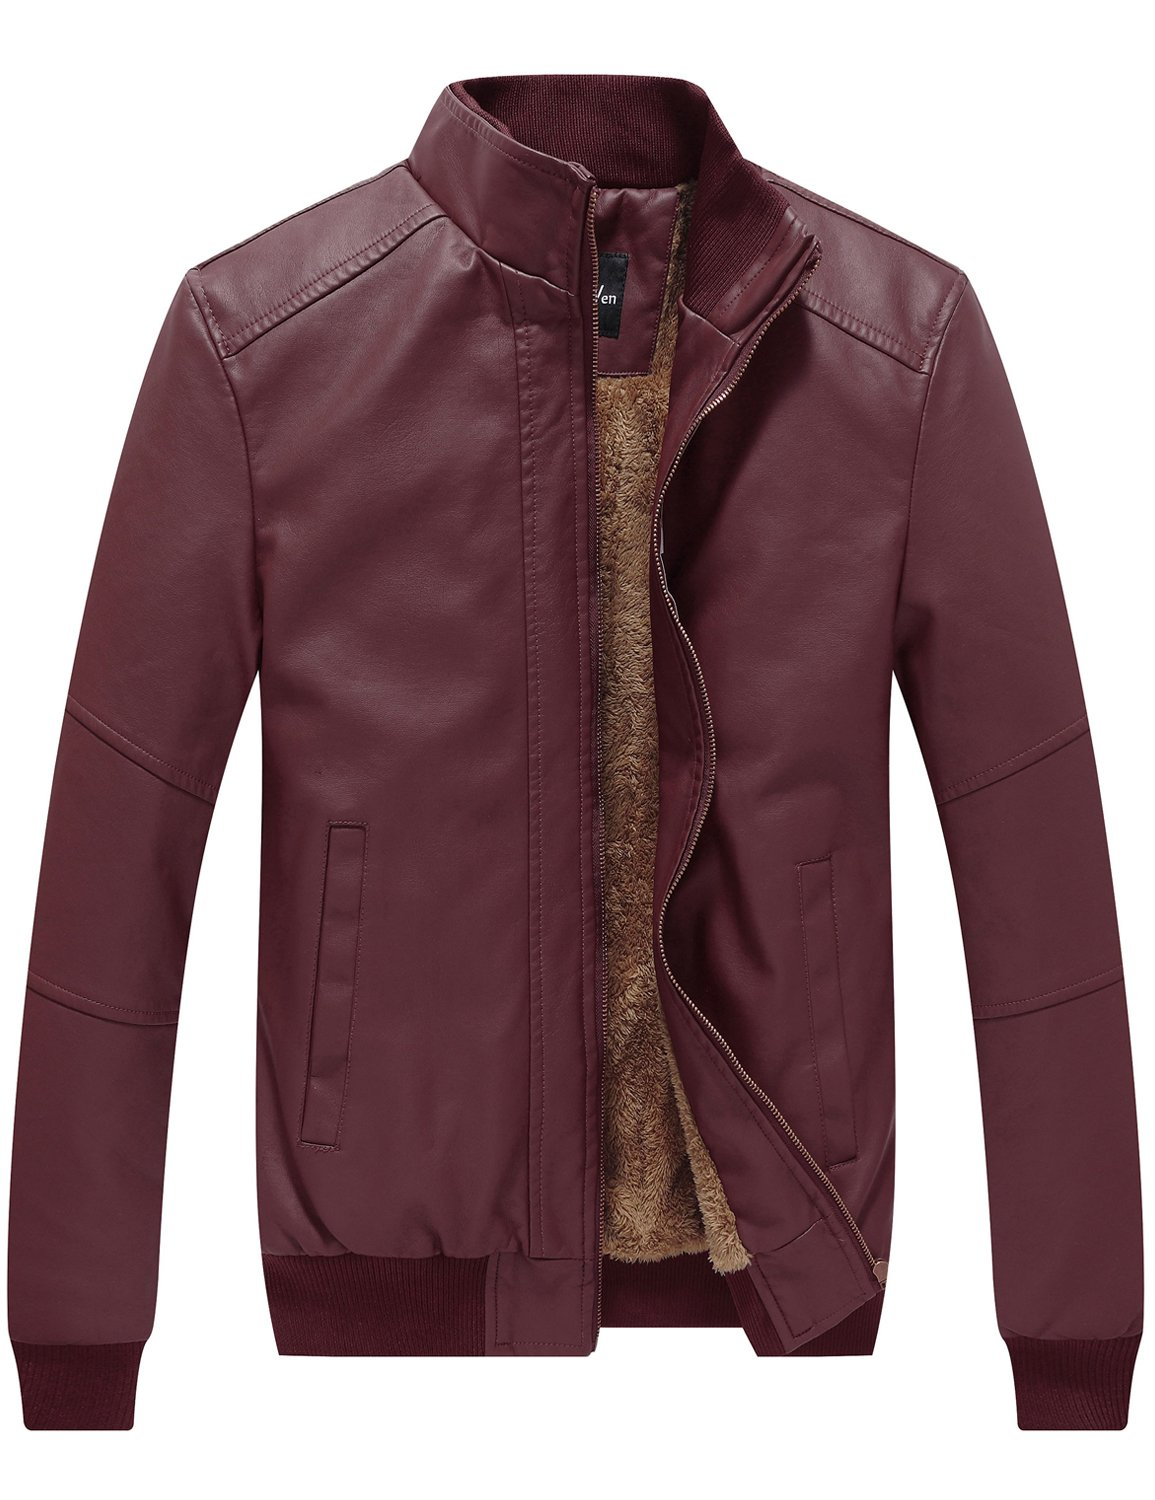 WenVen Men's Winter Fashion Faux Leather Jackets (Red Wine, X-Large) by WenVen